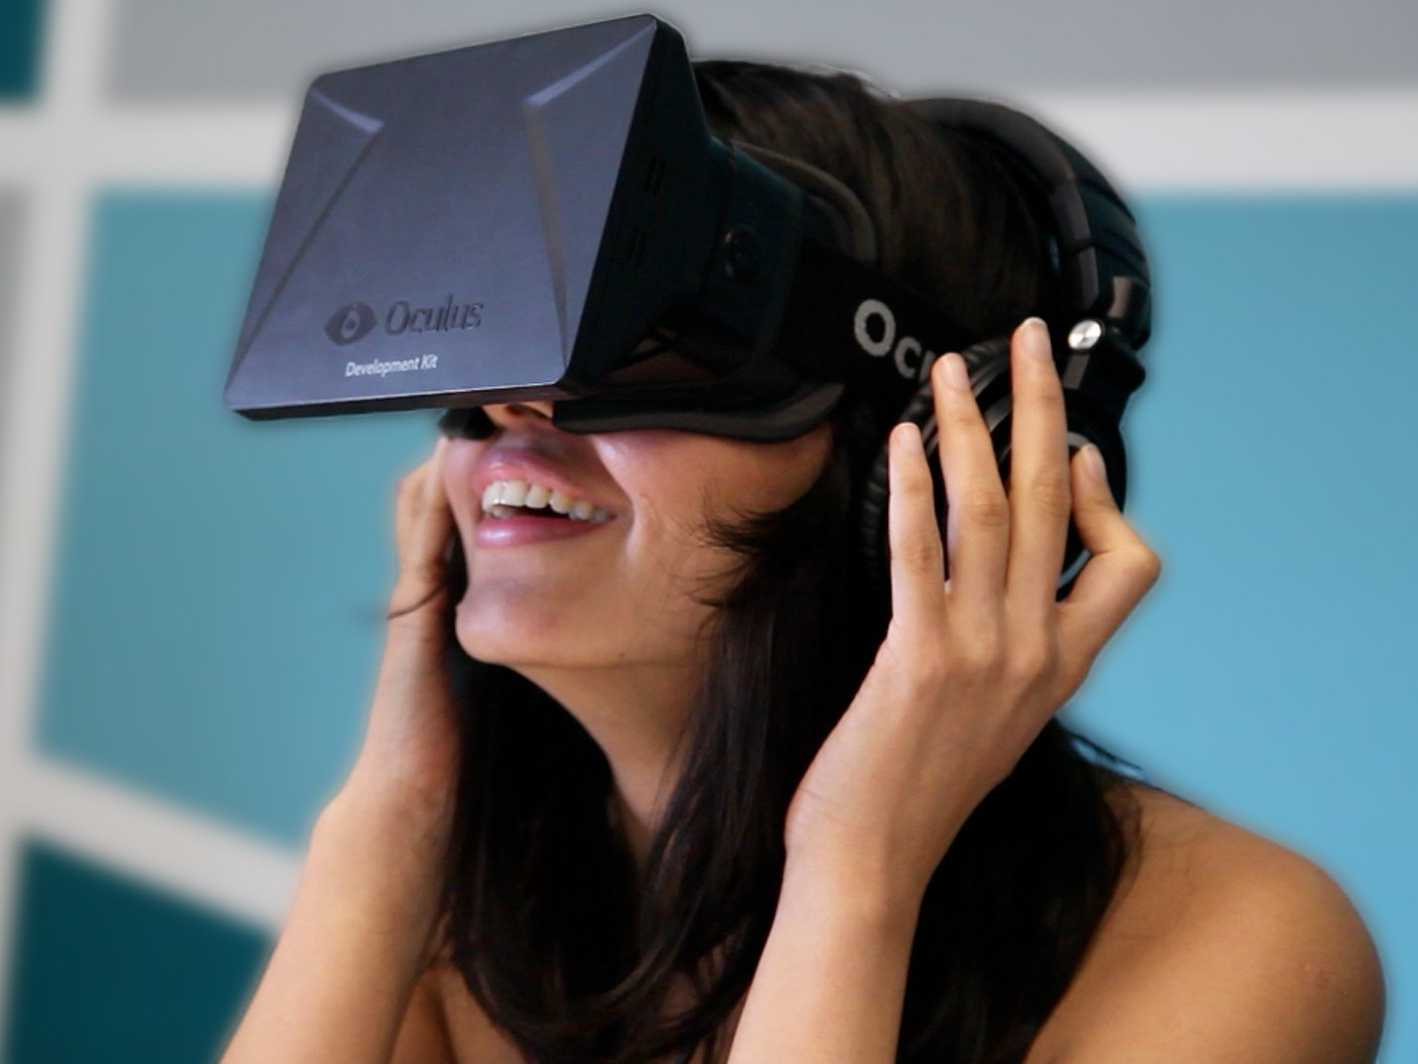 Facebook Acquires Oculus VR Googles Firm For $2 billion, Eyes The Future!